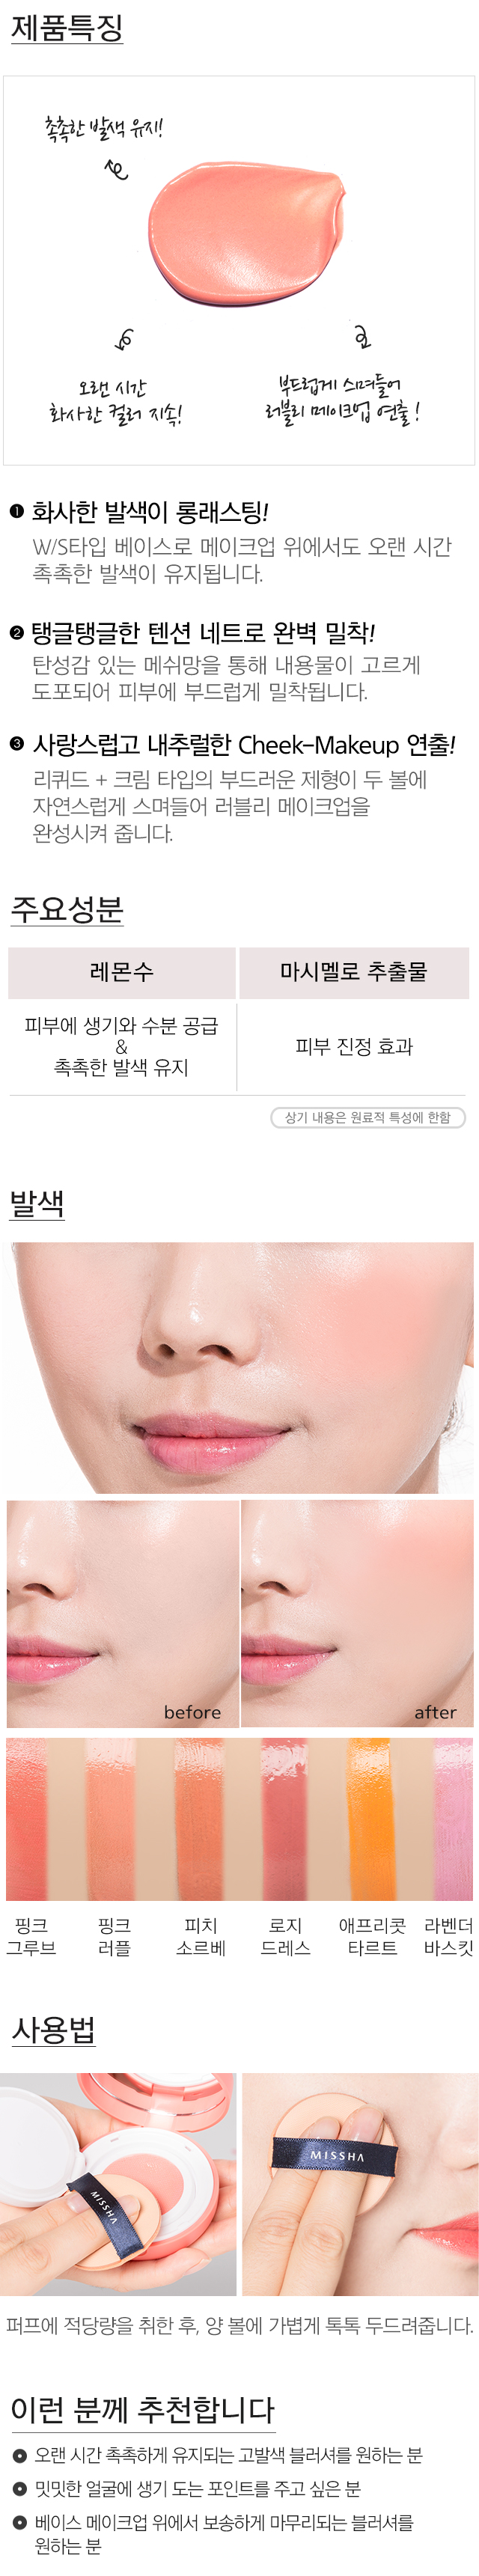 MISSHA_TENSION_BLUSHER_PK02_02.jpg